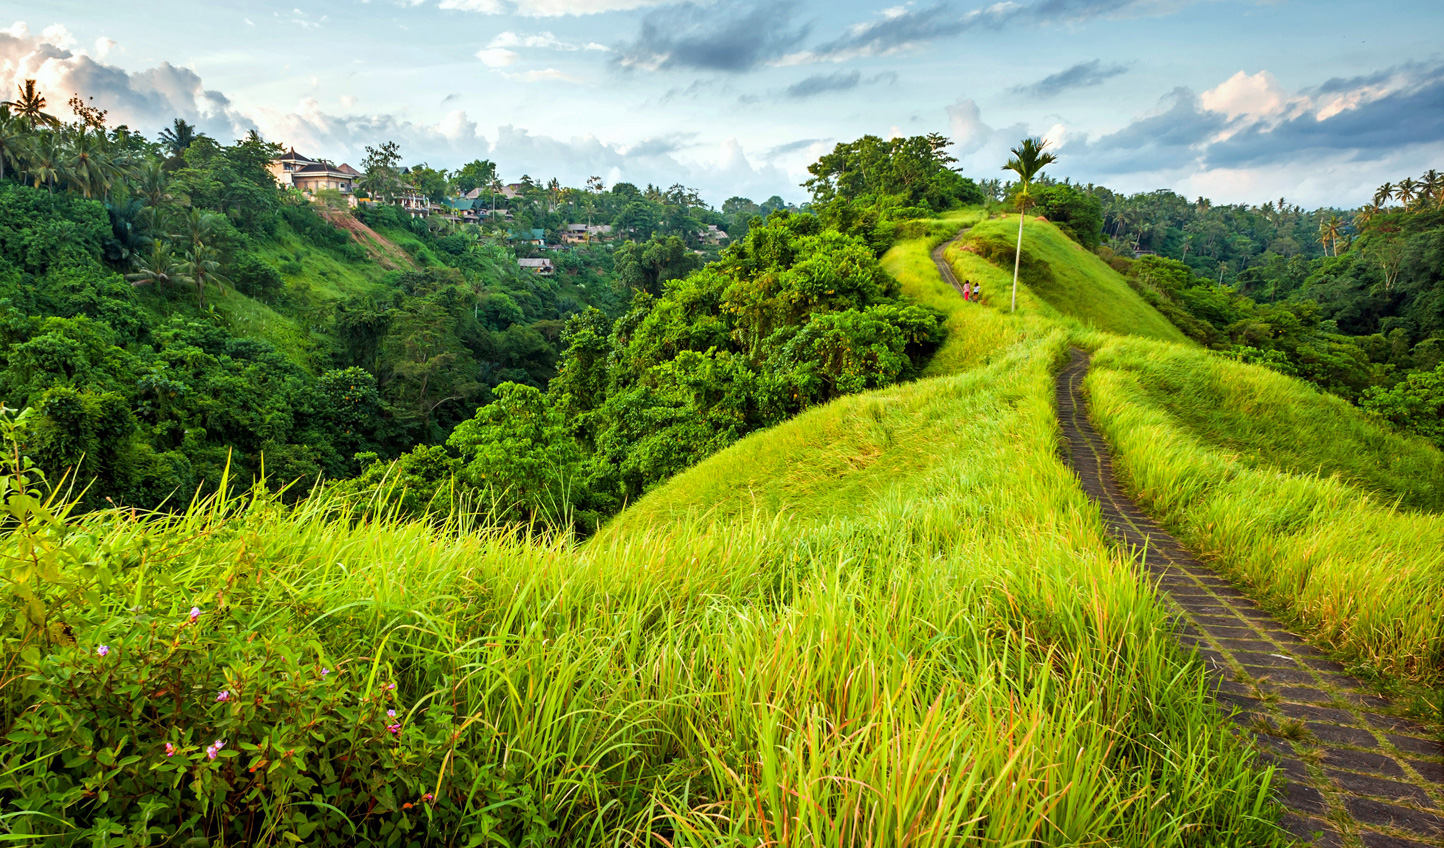 Head into the lush paddy fields of Ubud